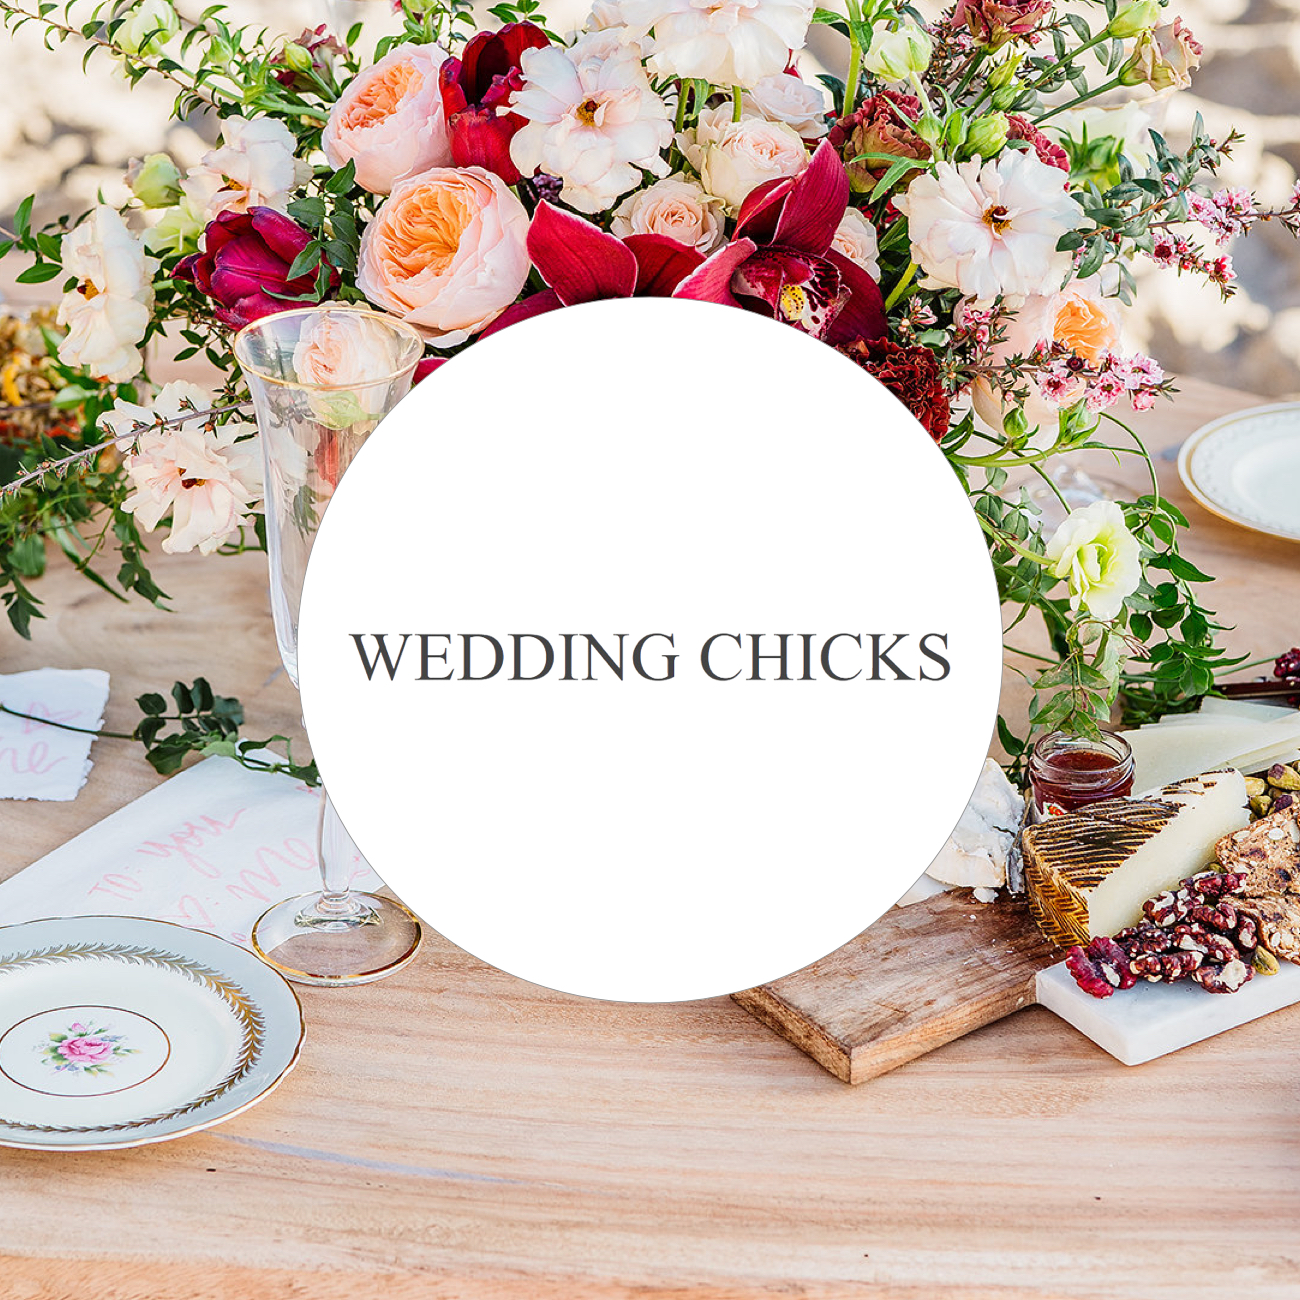 Sibyl_Sophia_Featured_Wedding_Chicks_Galentines.jpg